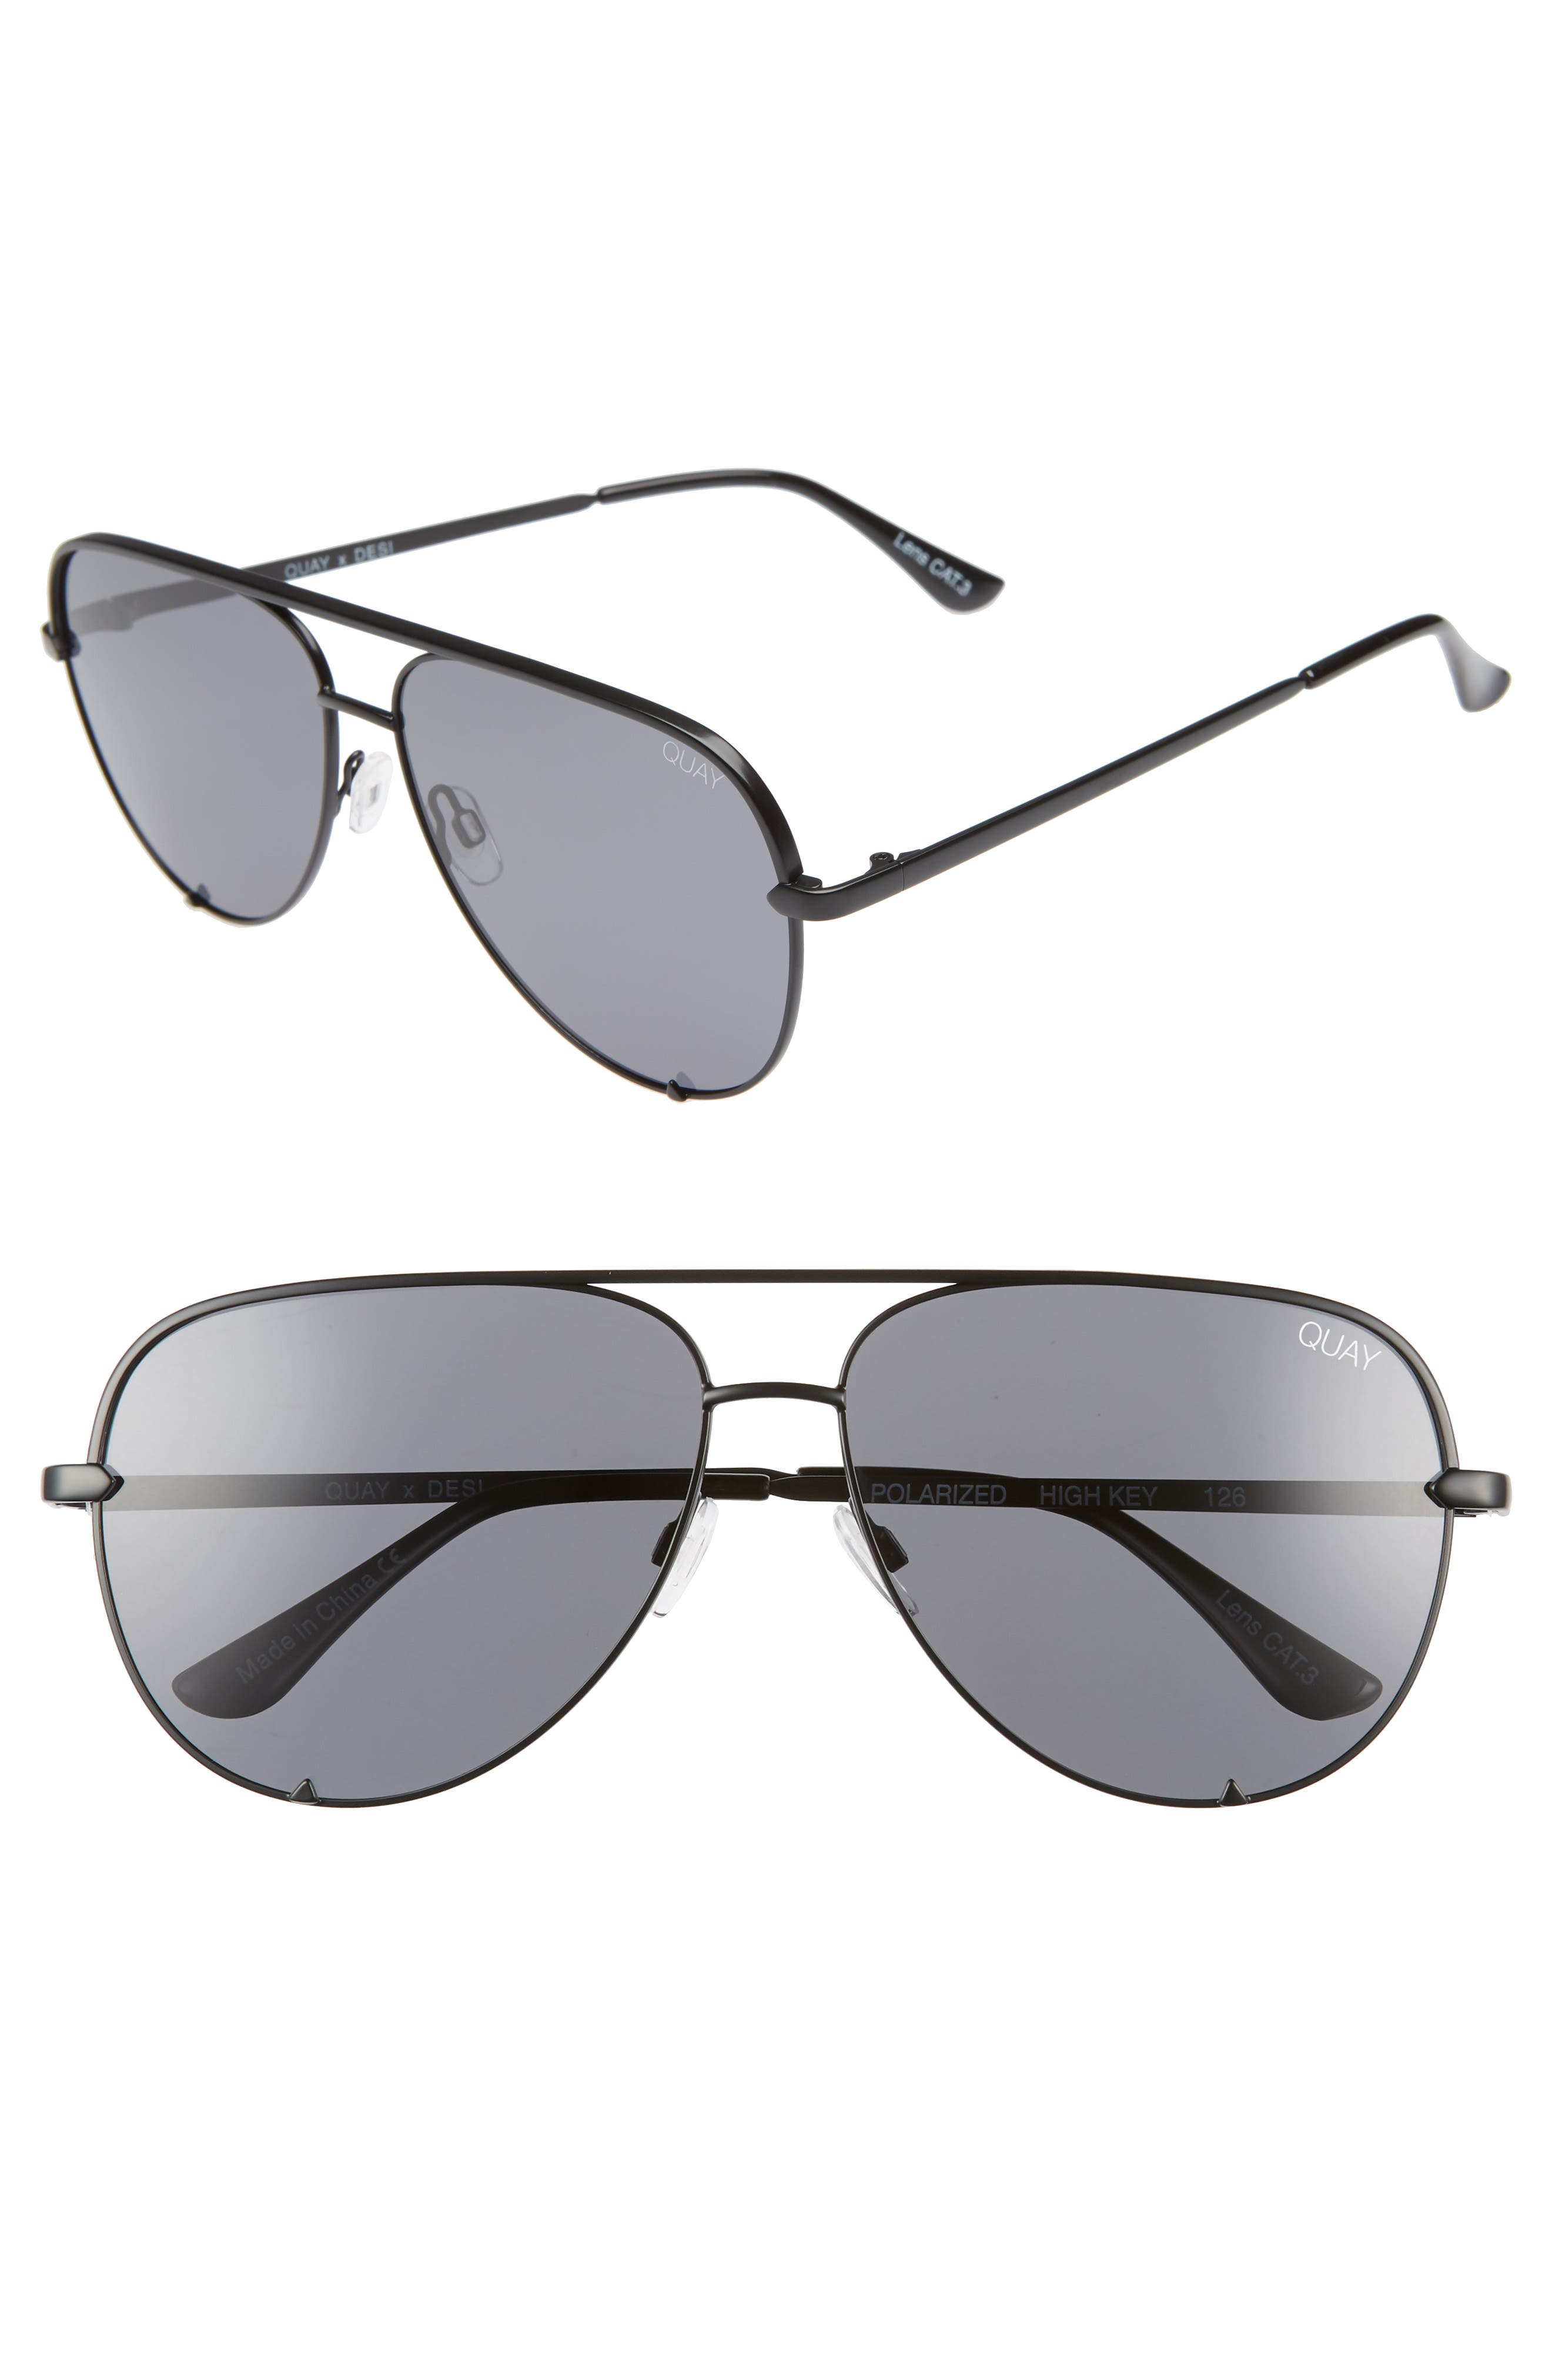 4230ff85d73 Quay Australia X Desi Perkins High Key 62Mm Aviator Sunglasses - Black   Smoke